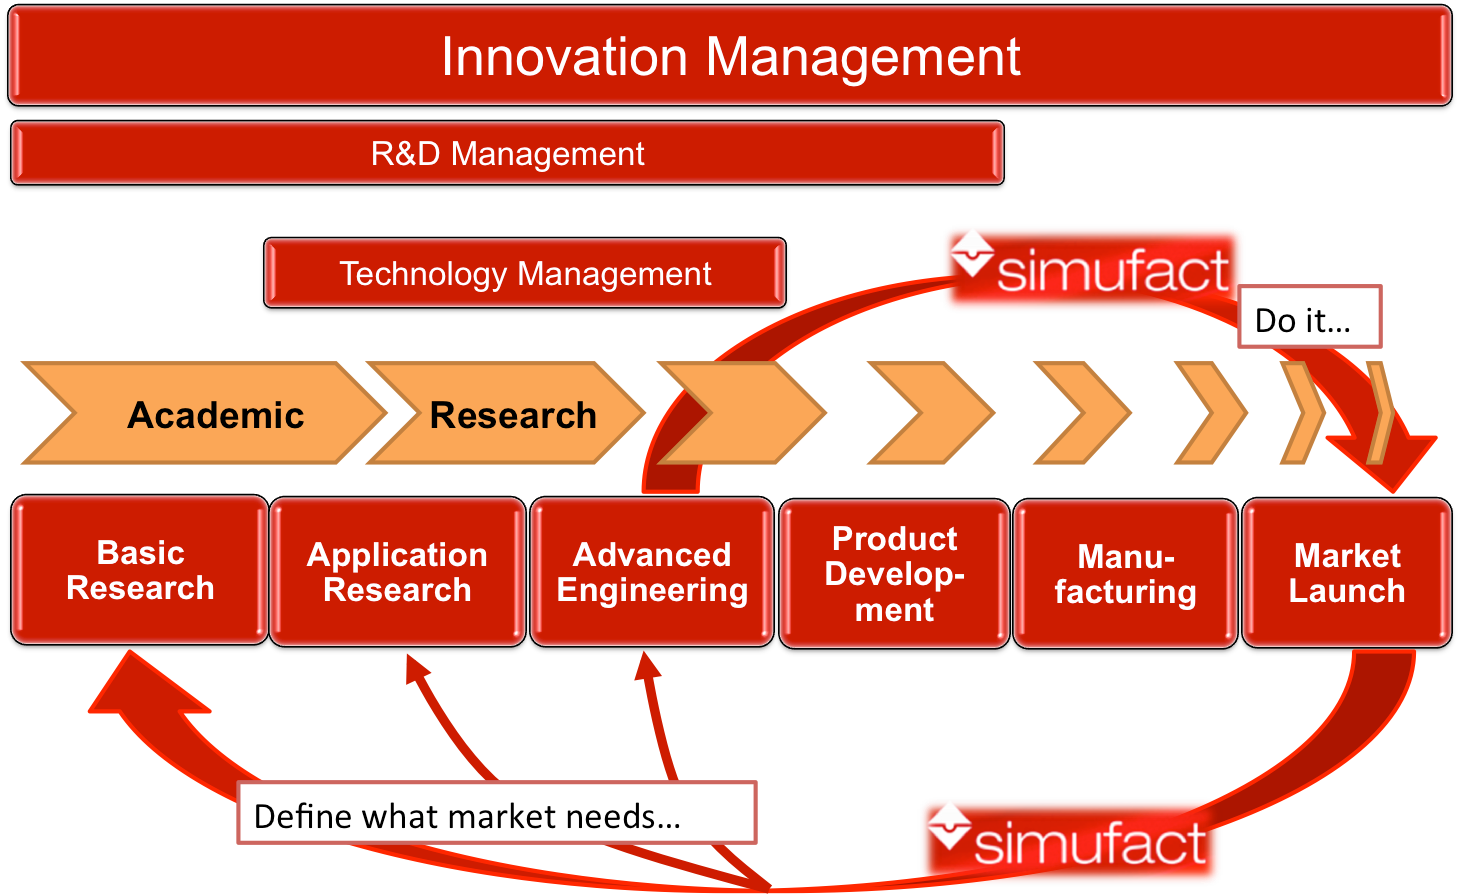 technological process innovation and production management innovation Innovation process is complex phenomenon of dissemination of new ideas, technical and practical application, accompanied by specific economic and social effects innovation process includes all phases of technological change, invention (idea), innovation and diffusion (dissemination.